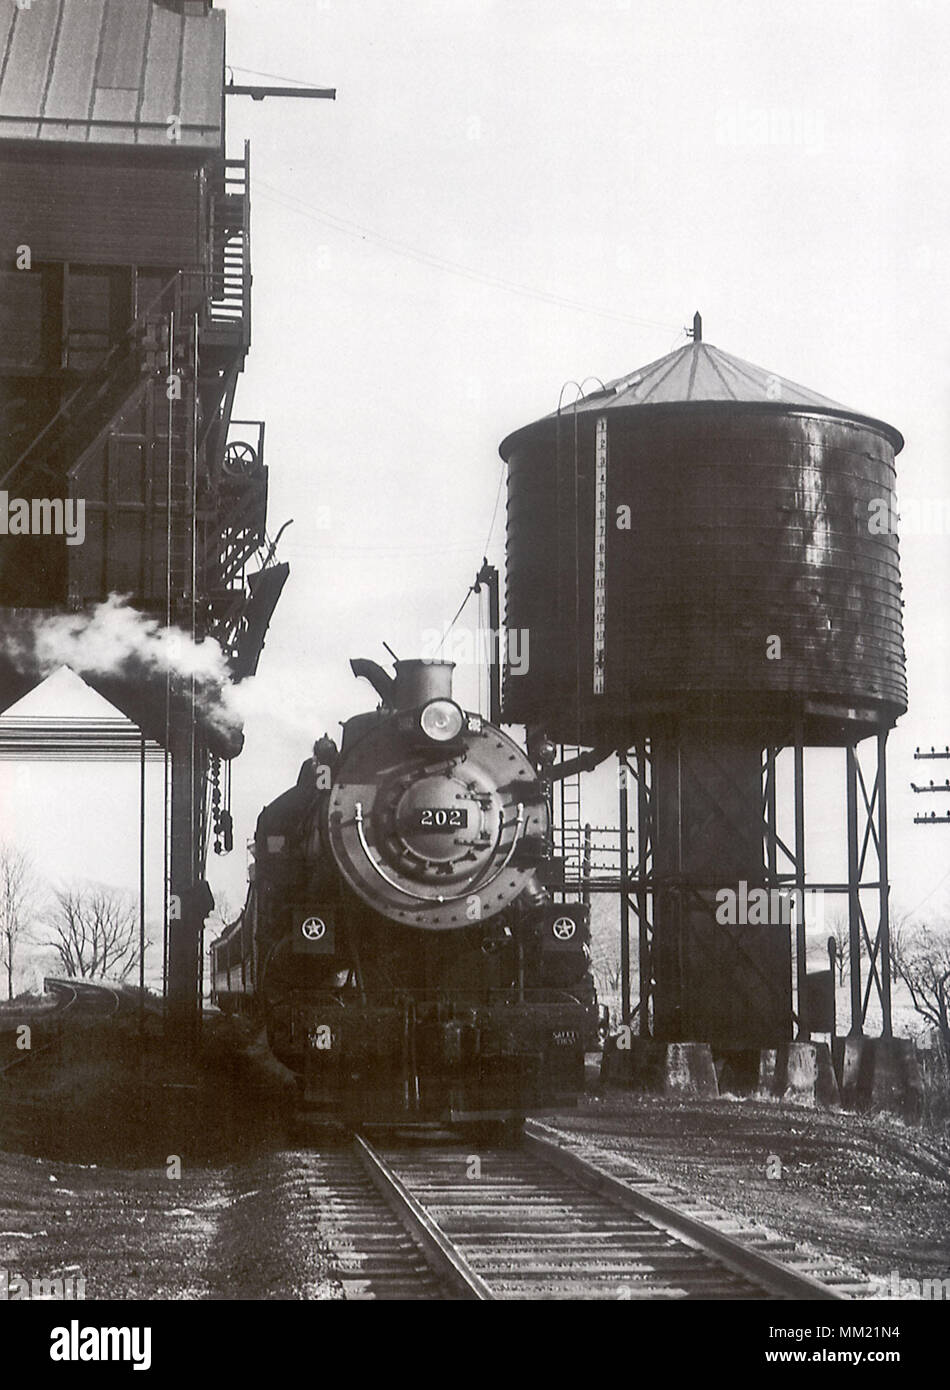 Baltimore & Ohio Railroad Diesel. Harpers Ferry. 1952 - Stock Image